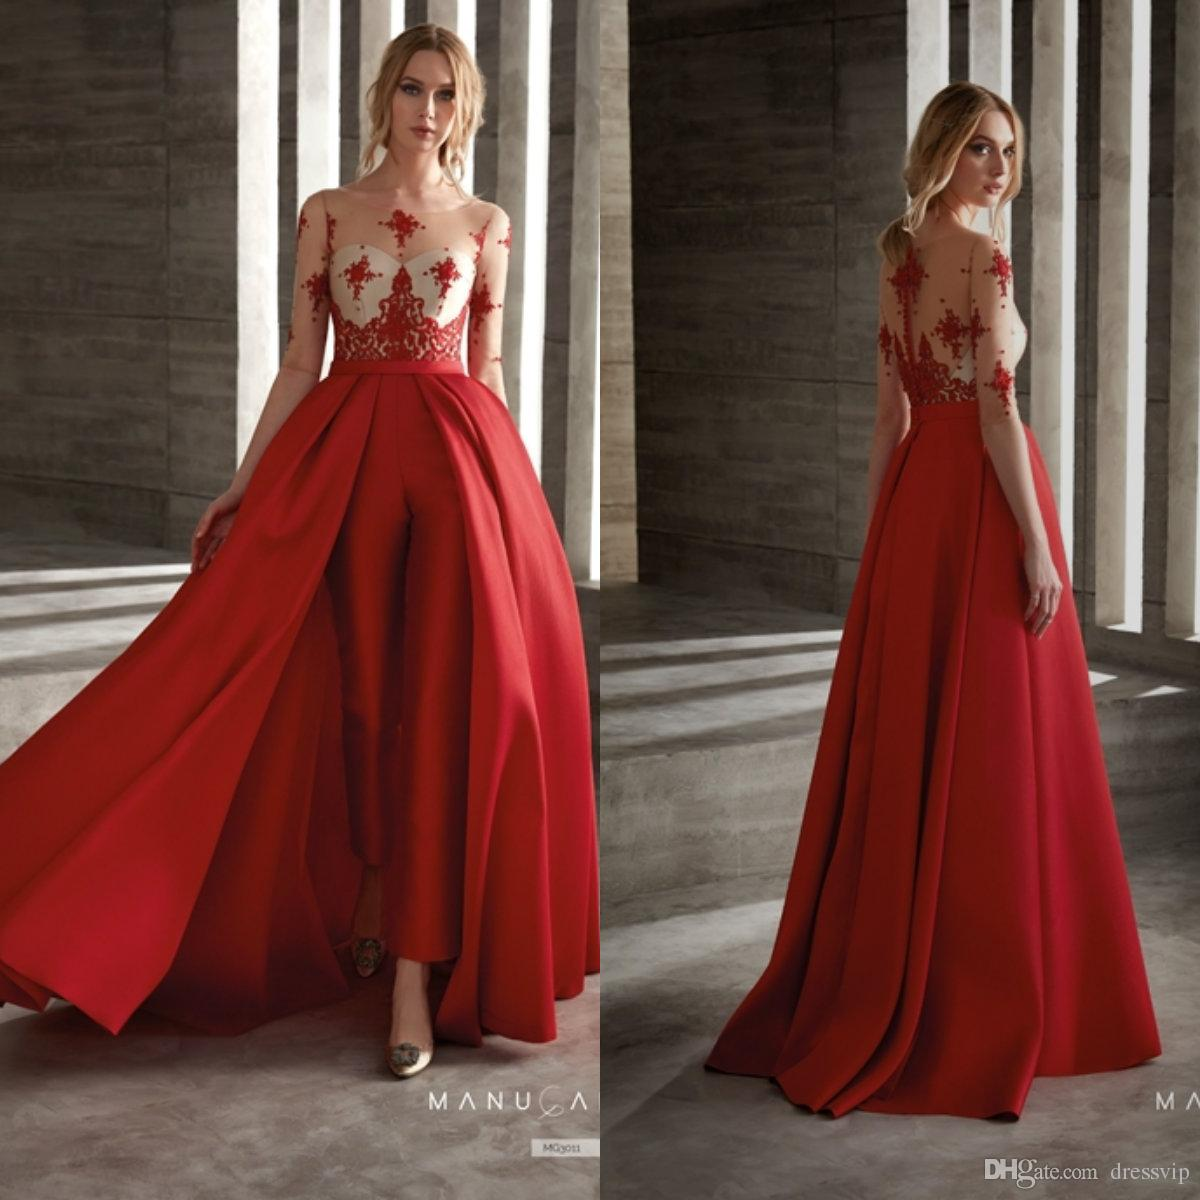 a064ae19b98 Red Prom Dresses With Detachable Skirt Satin Fashion Women Jumpsuit Half  Long Sleeve Cocktail Dress Party Wear Custom Made Evening Gowns Wholesale  Prom ...